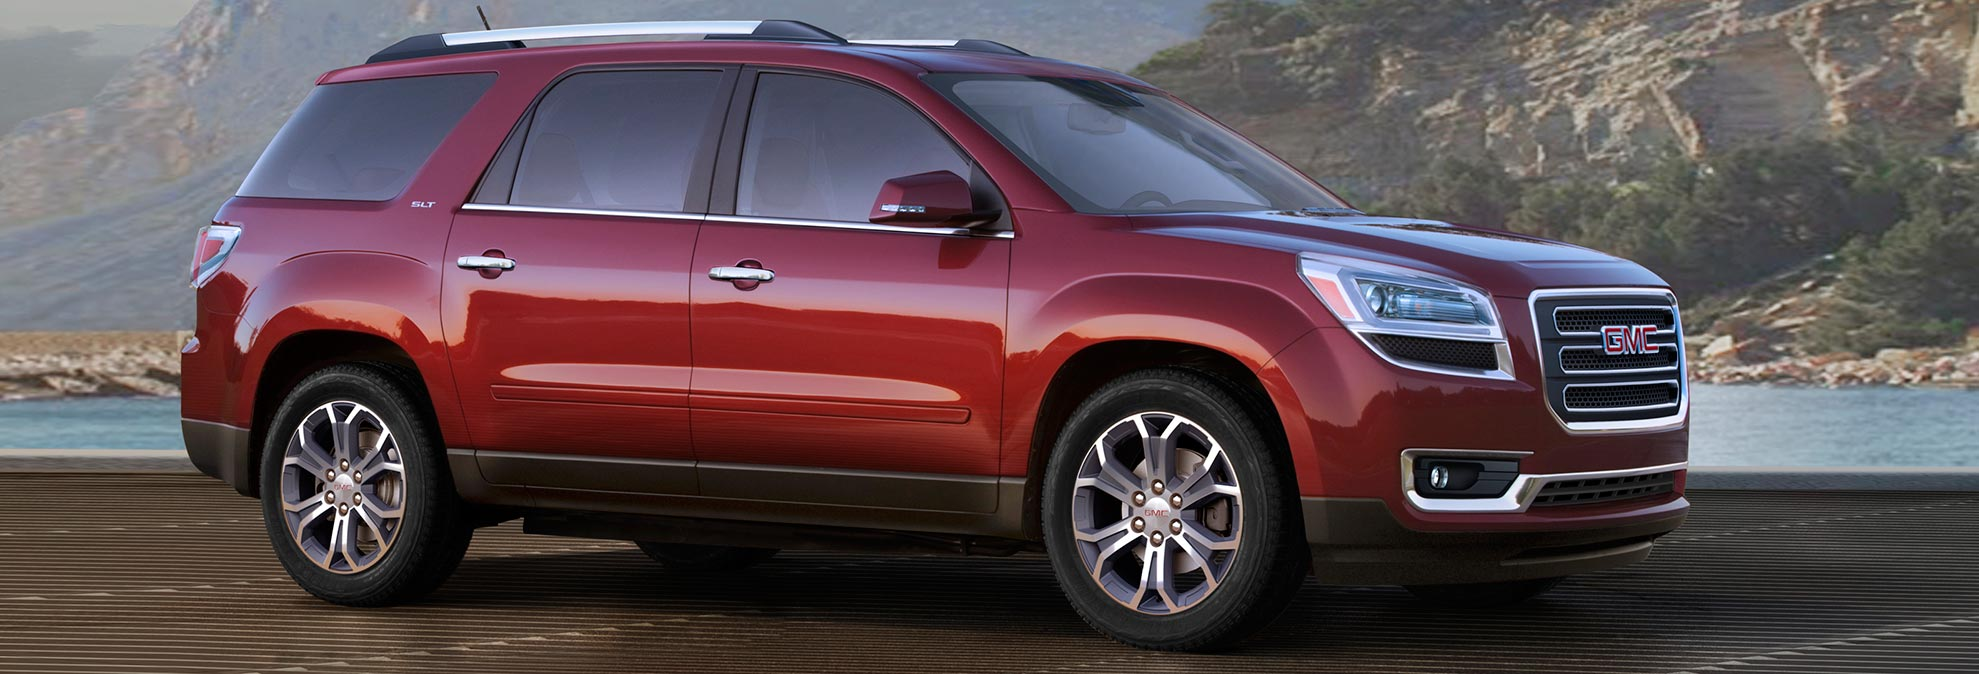 gmc acadia product reviews and ratings consumer reports autos post. Black Bedroom Furniture Sets. Home Design Ideas